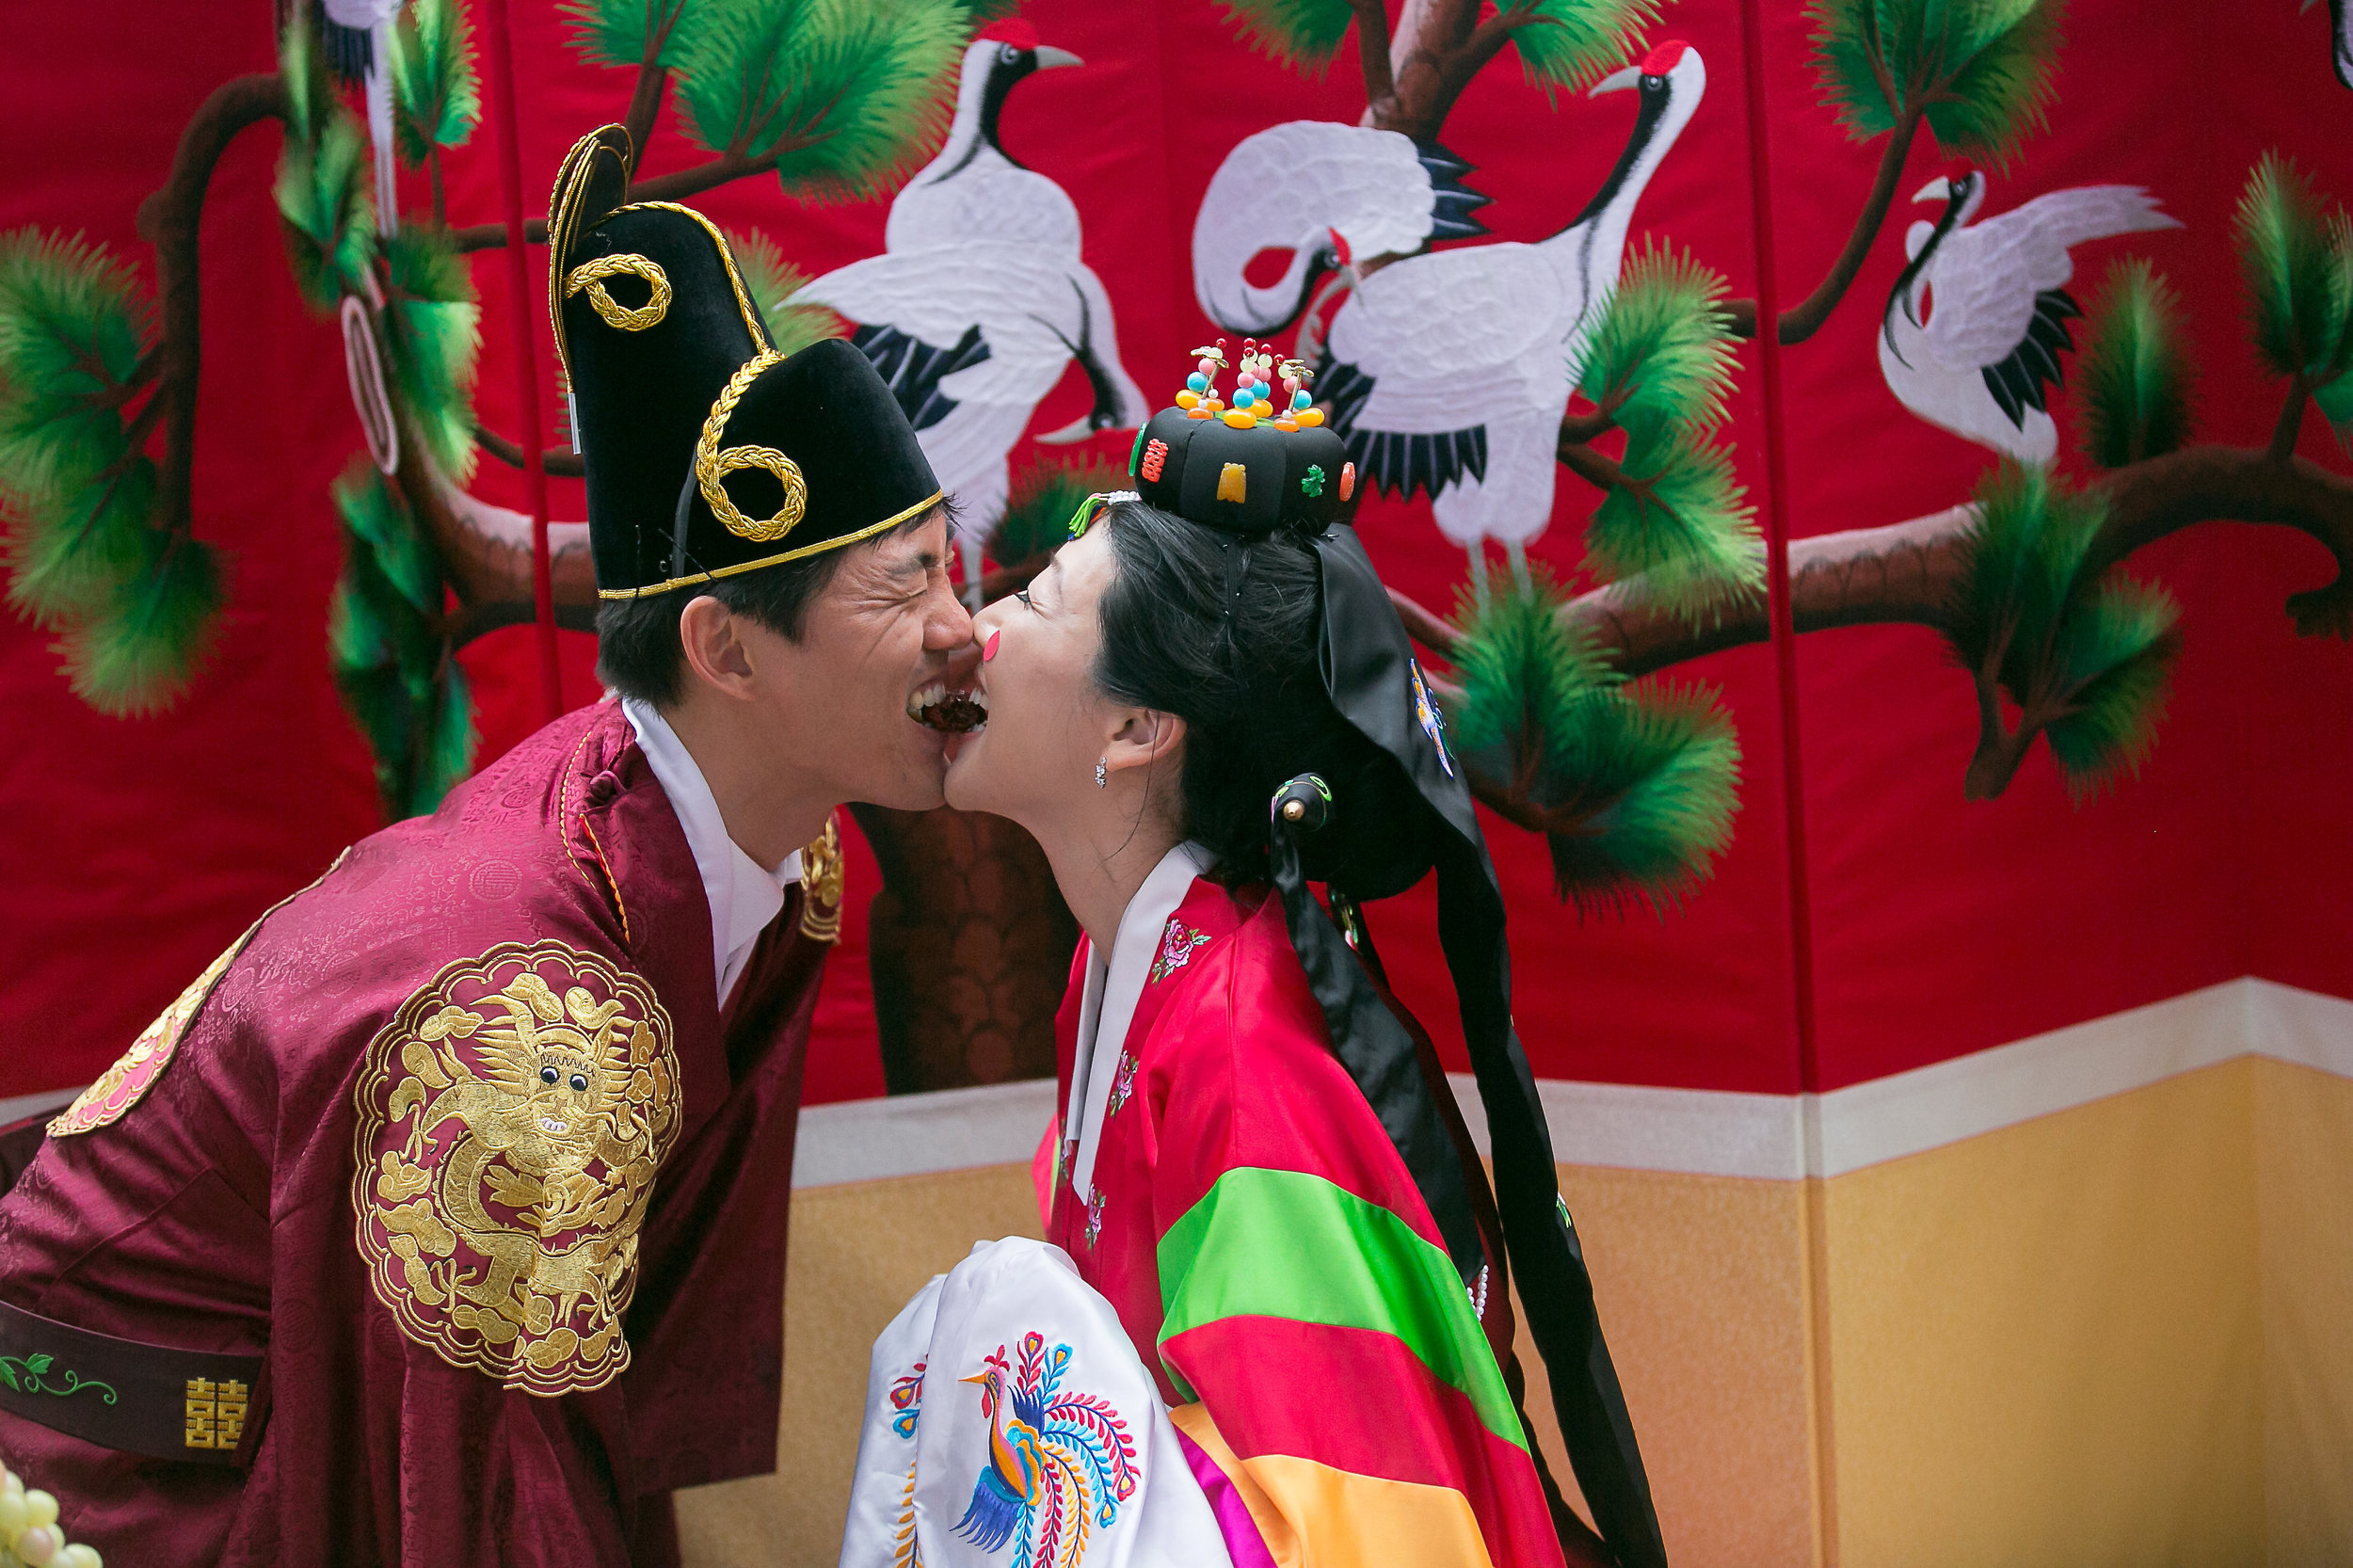 korean wedding traditions.jpg